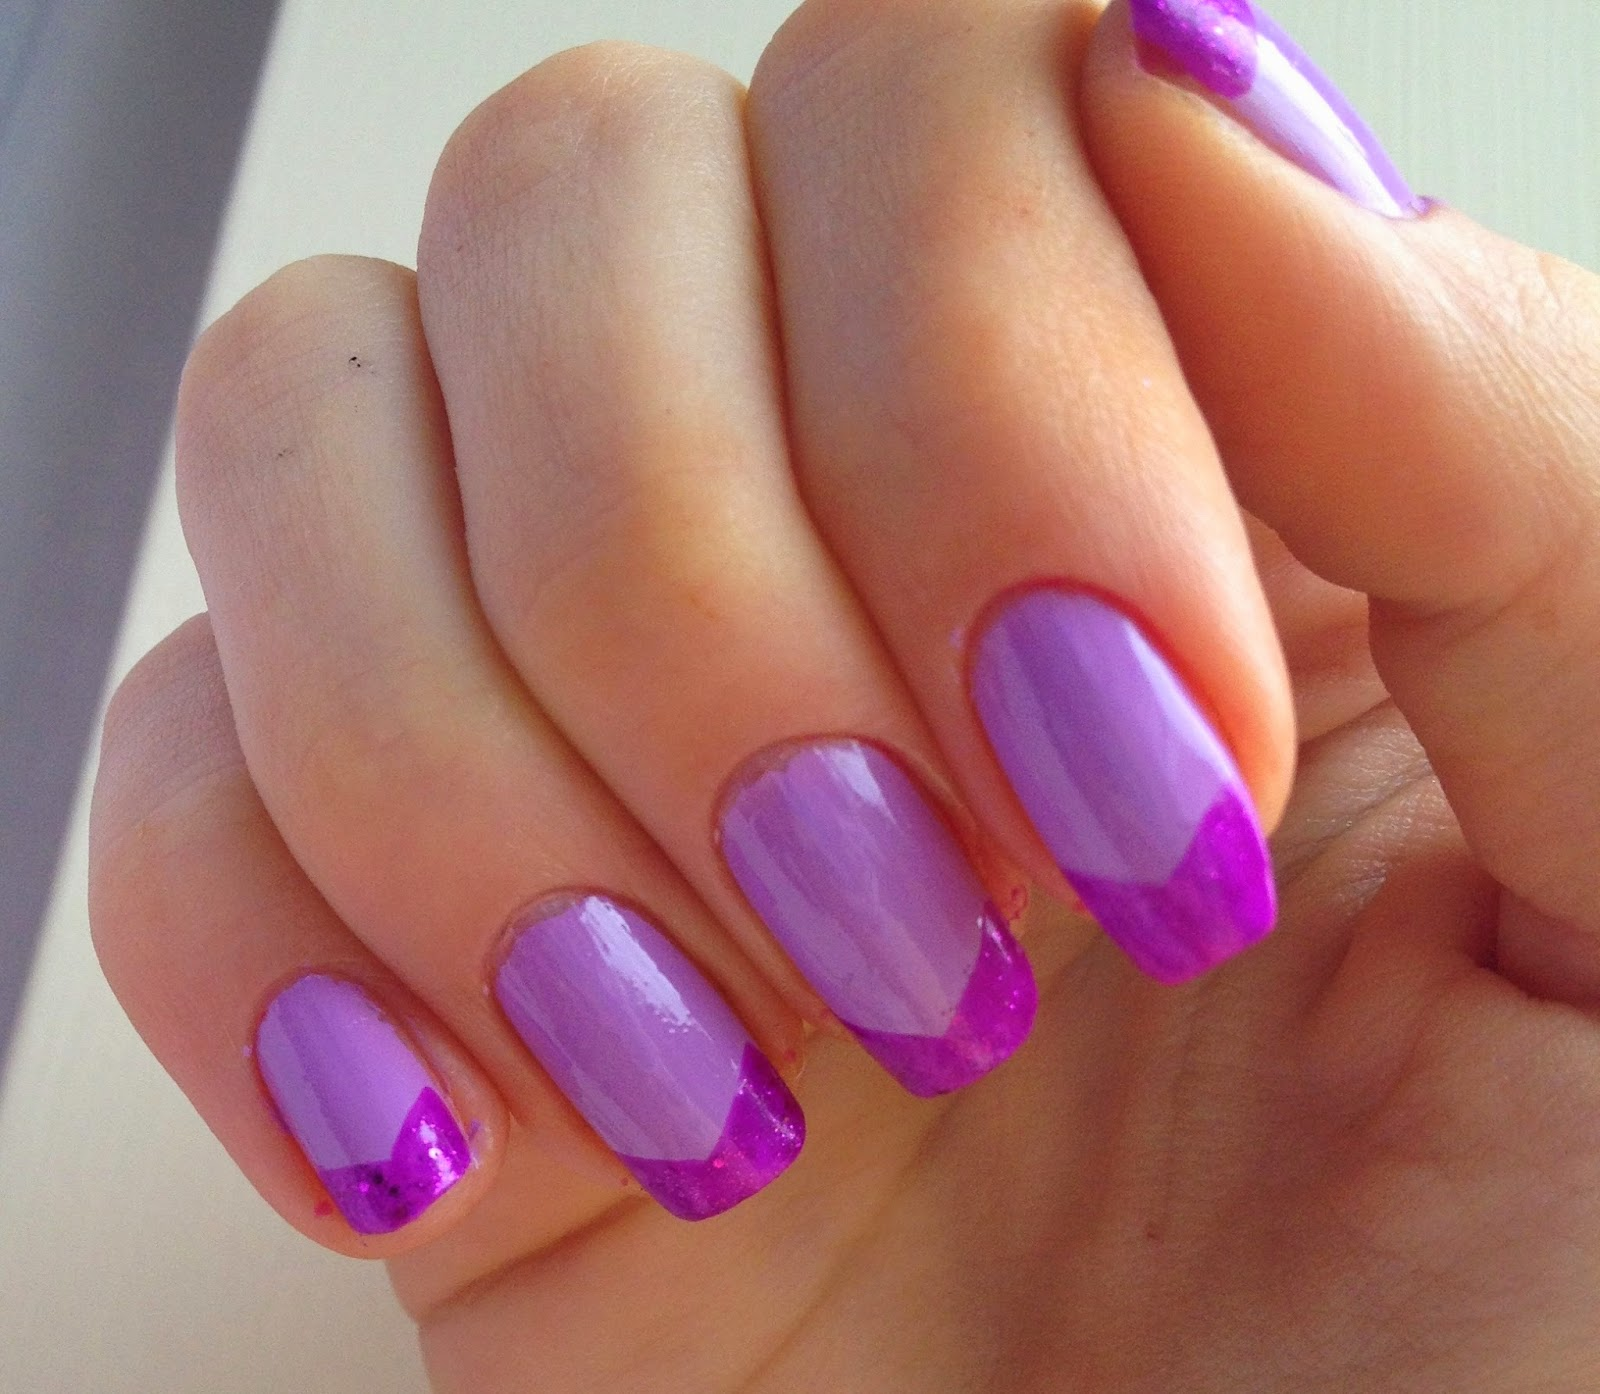 hexagonal-tips-nails-purple